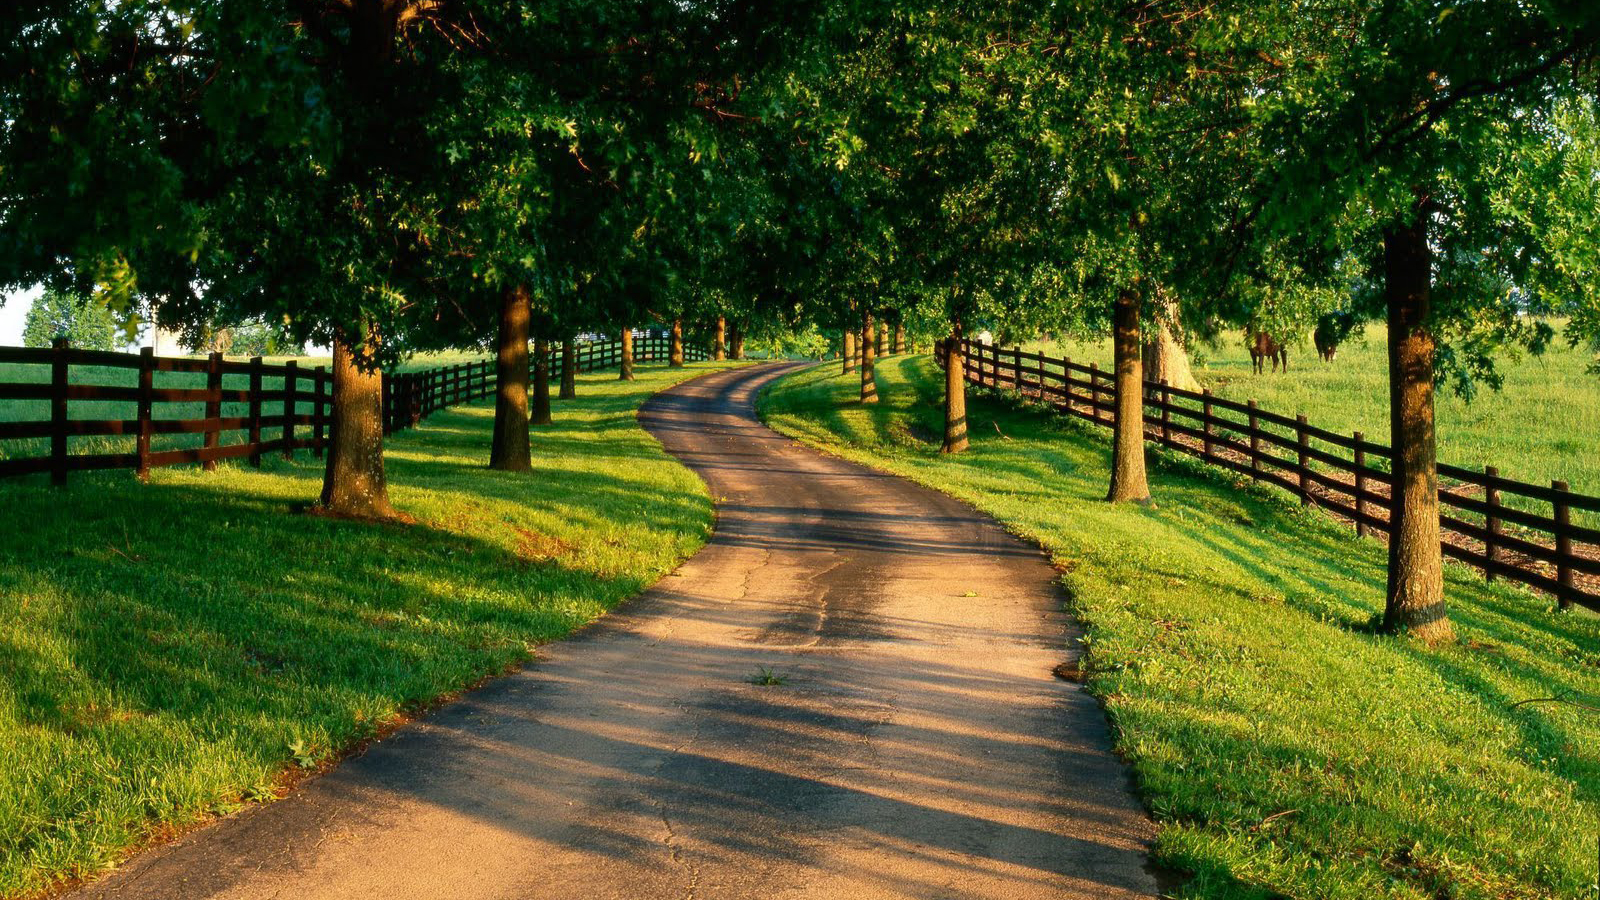 Road In The Country Wallpaper And Background Image